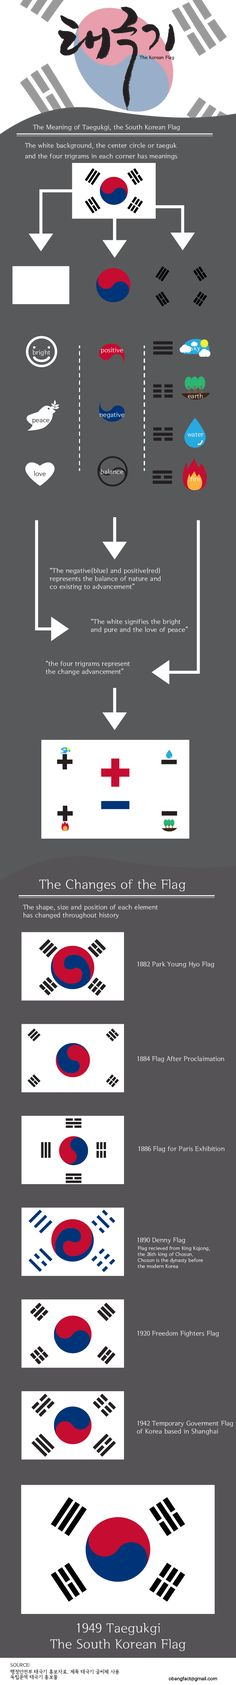 Facts about the Korean Flag. There is philosophical meaning in the flag